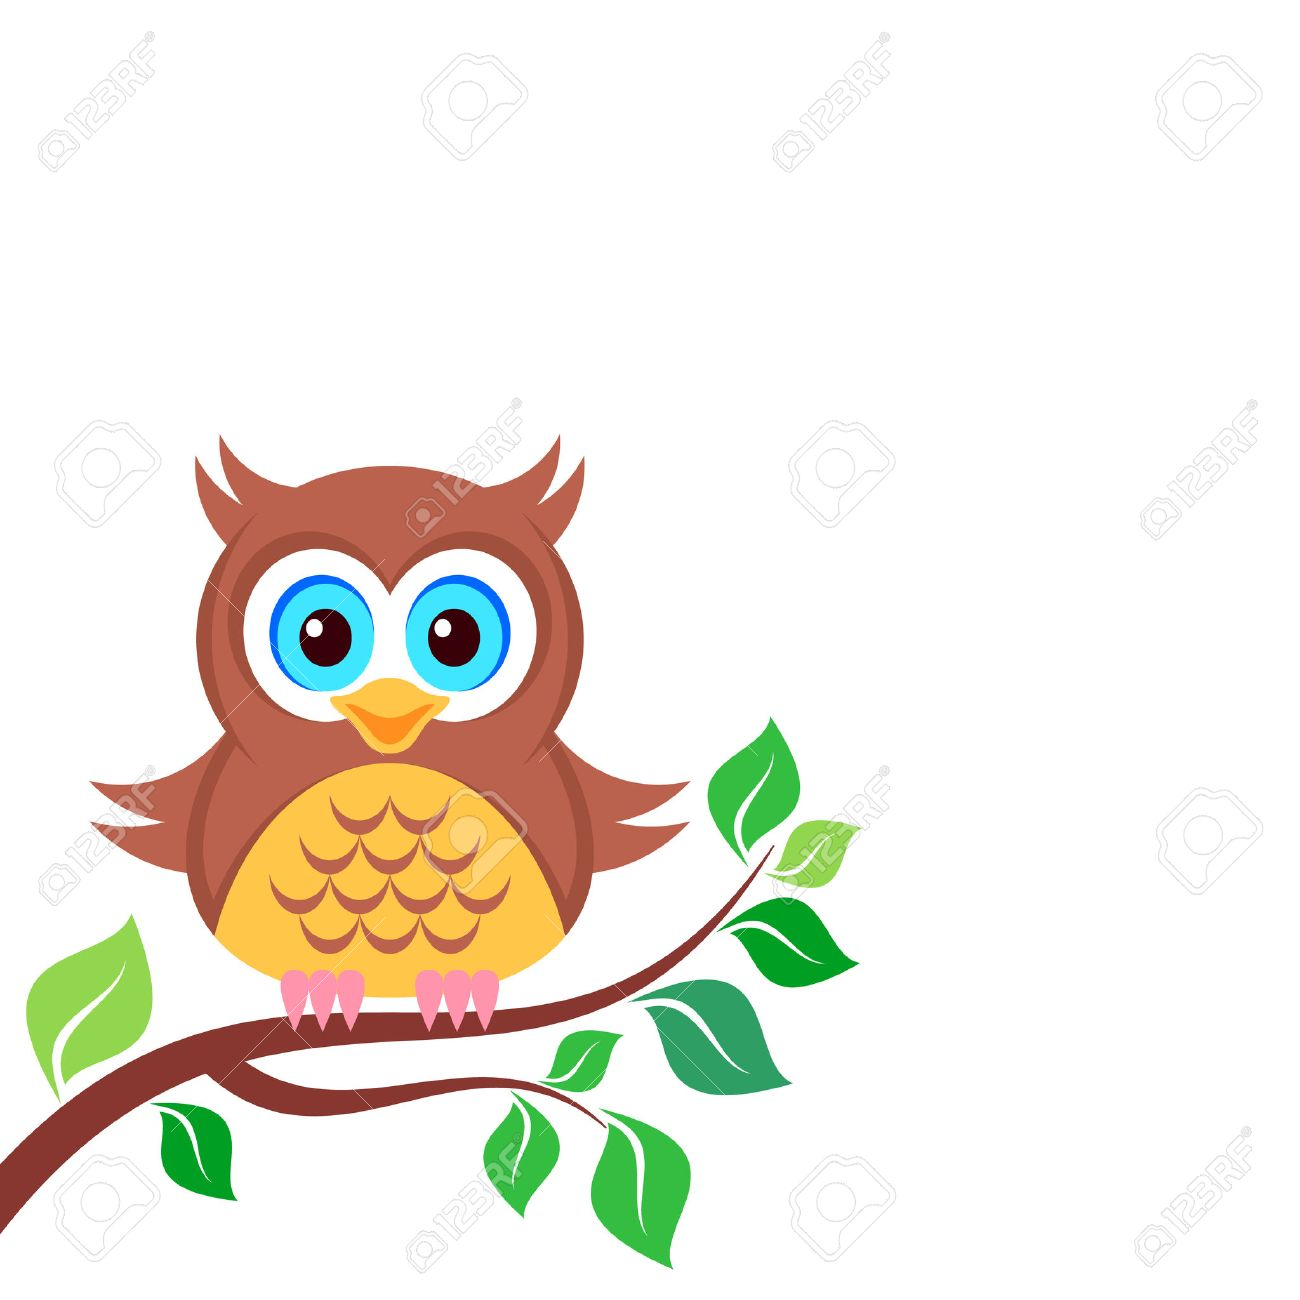 Cute colorful owl on the branch white background.